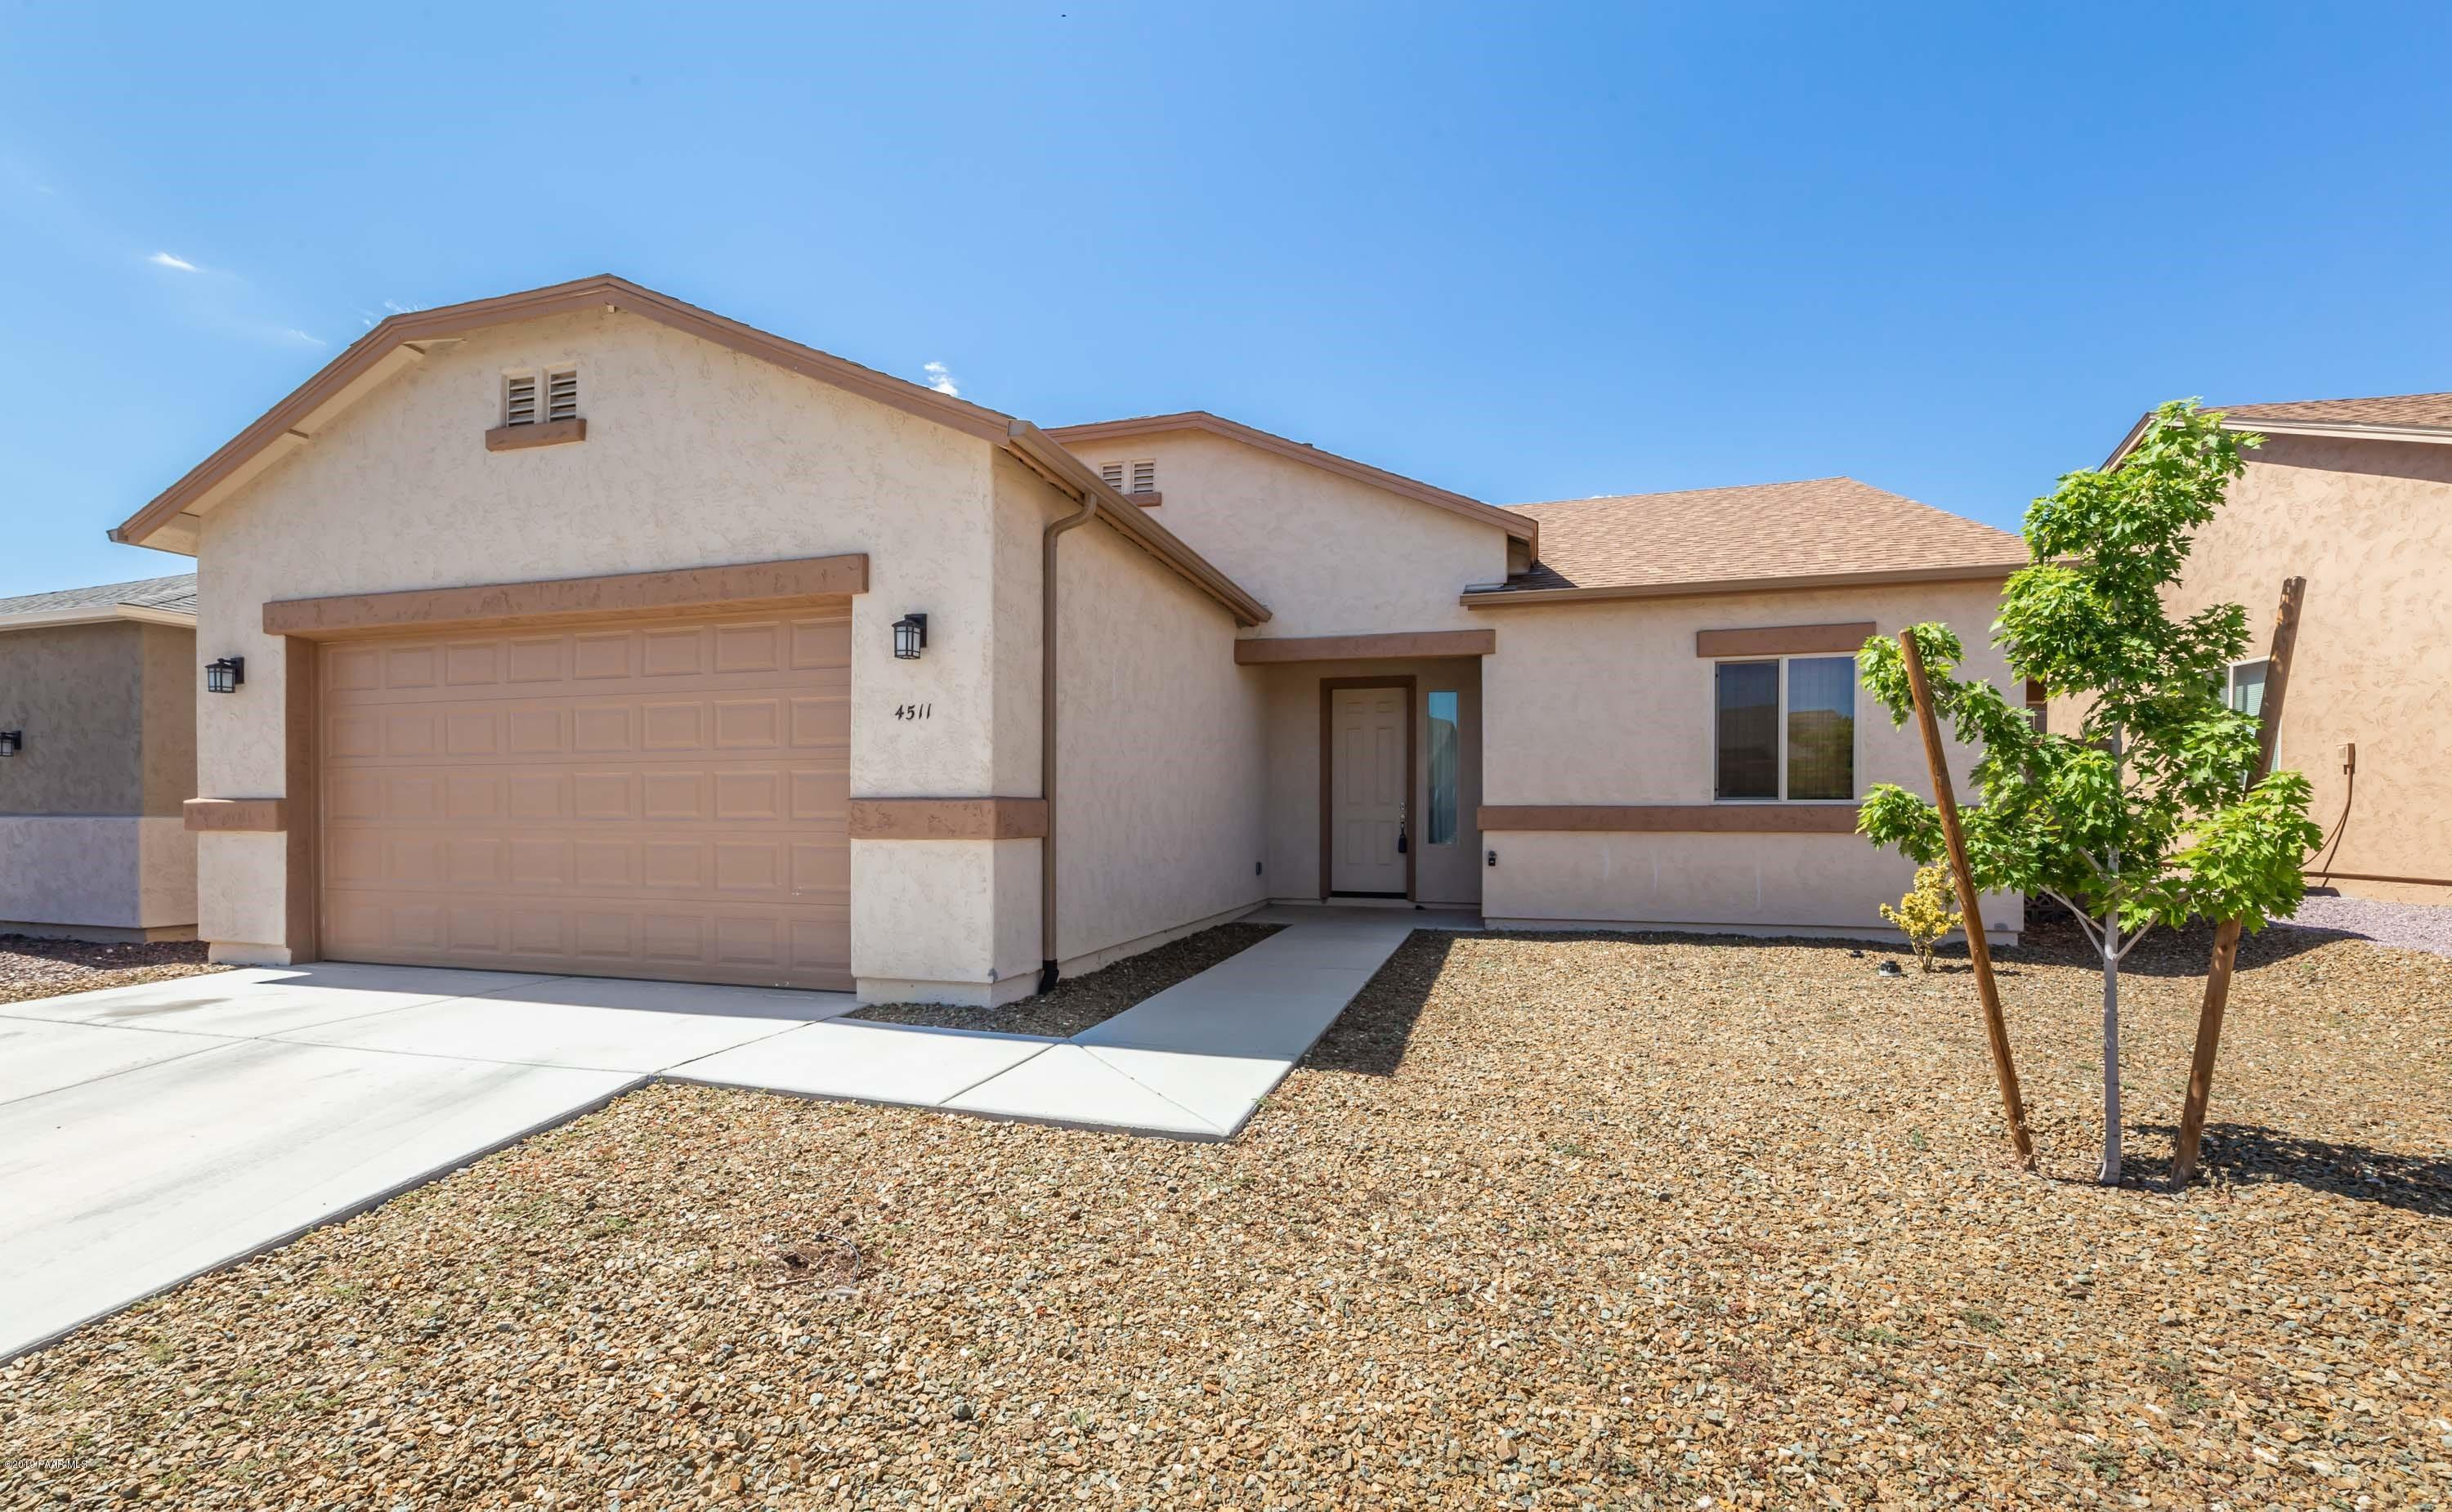 Photo of 4511 Dryden, Prescott Valley, AZ 86314